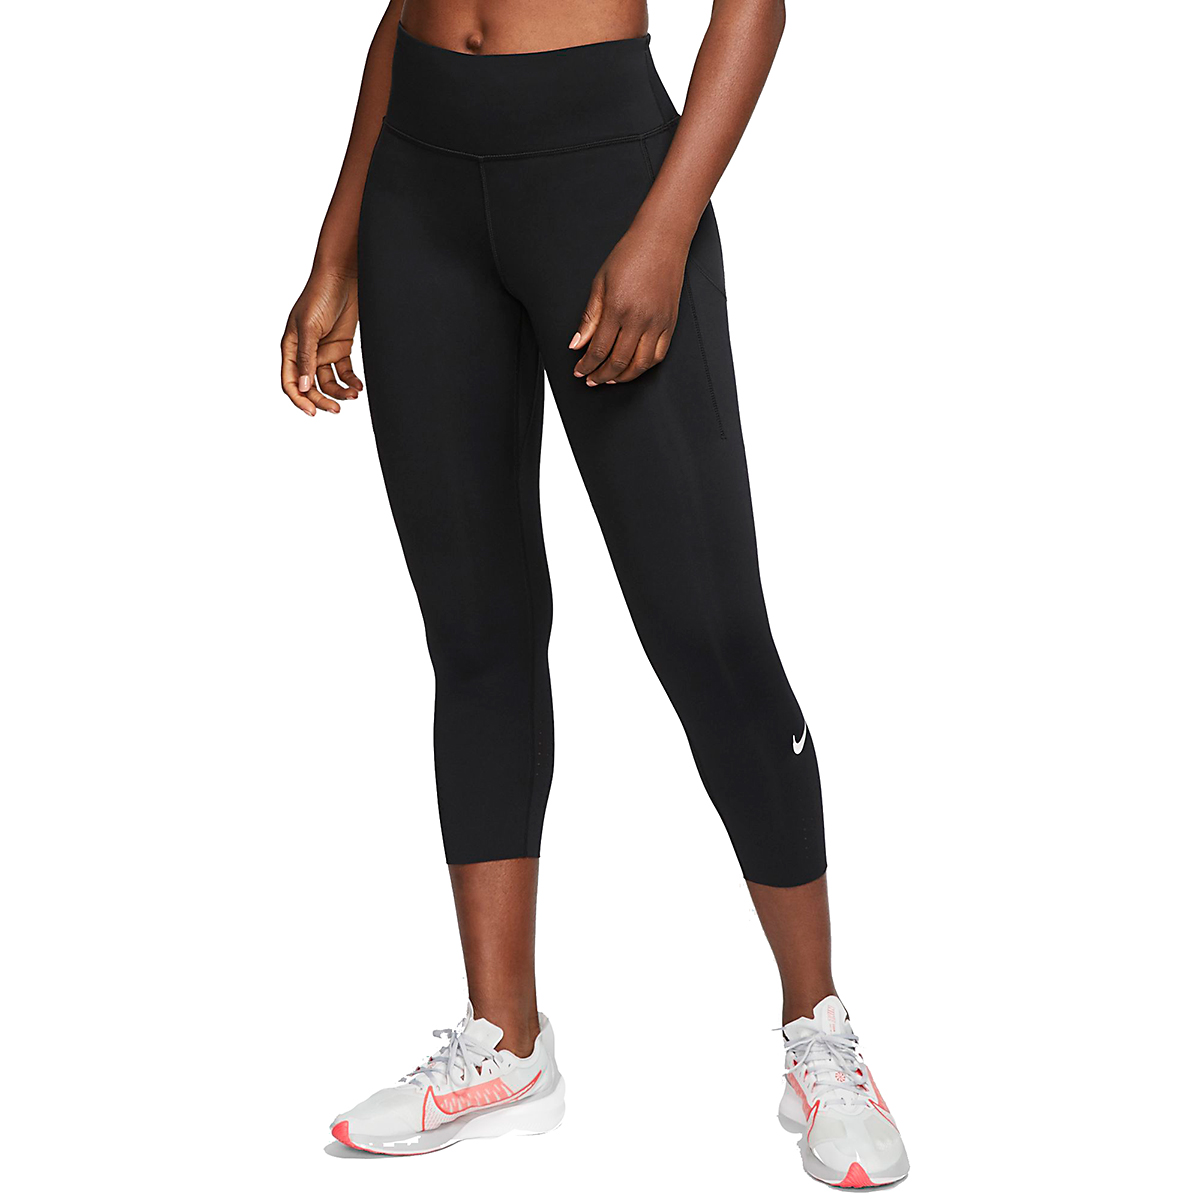 Women's Nike Epic Luxe Crop Tights - Color: Black - Size: XS, Black, large, image 1